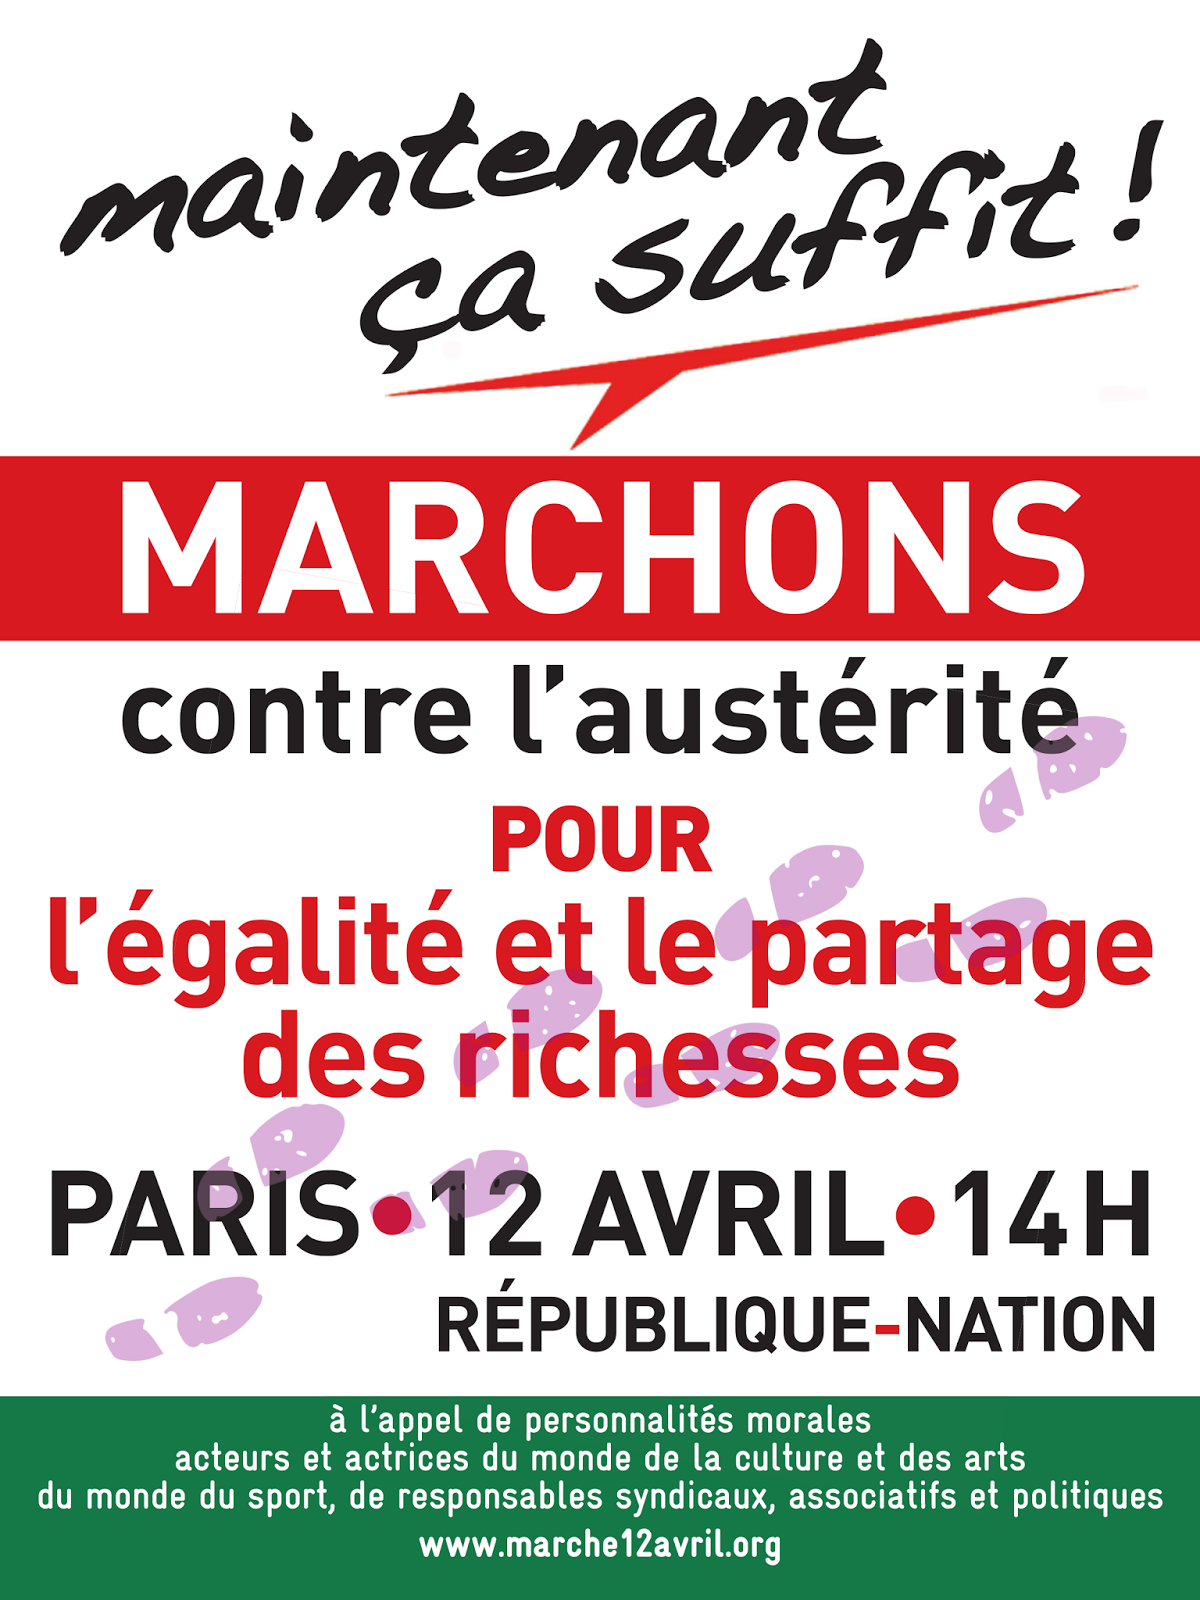 http://www.marche12avril.org/